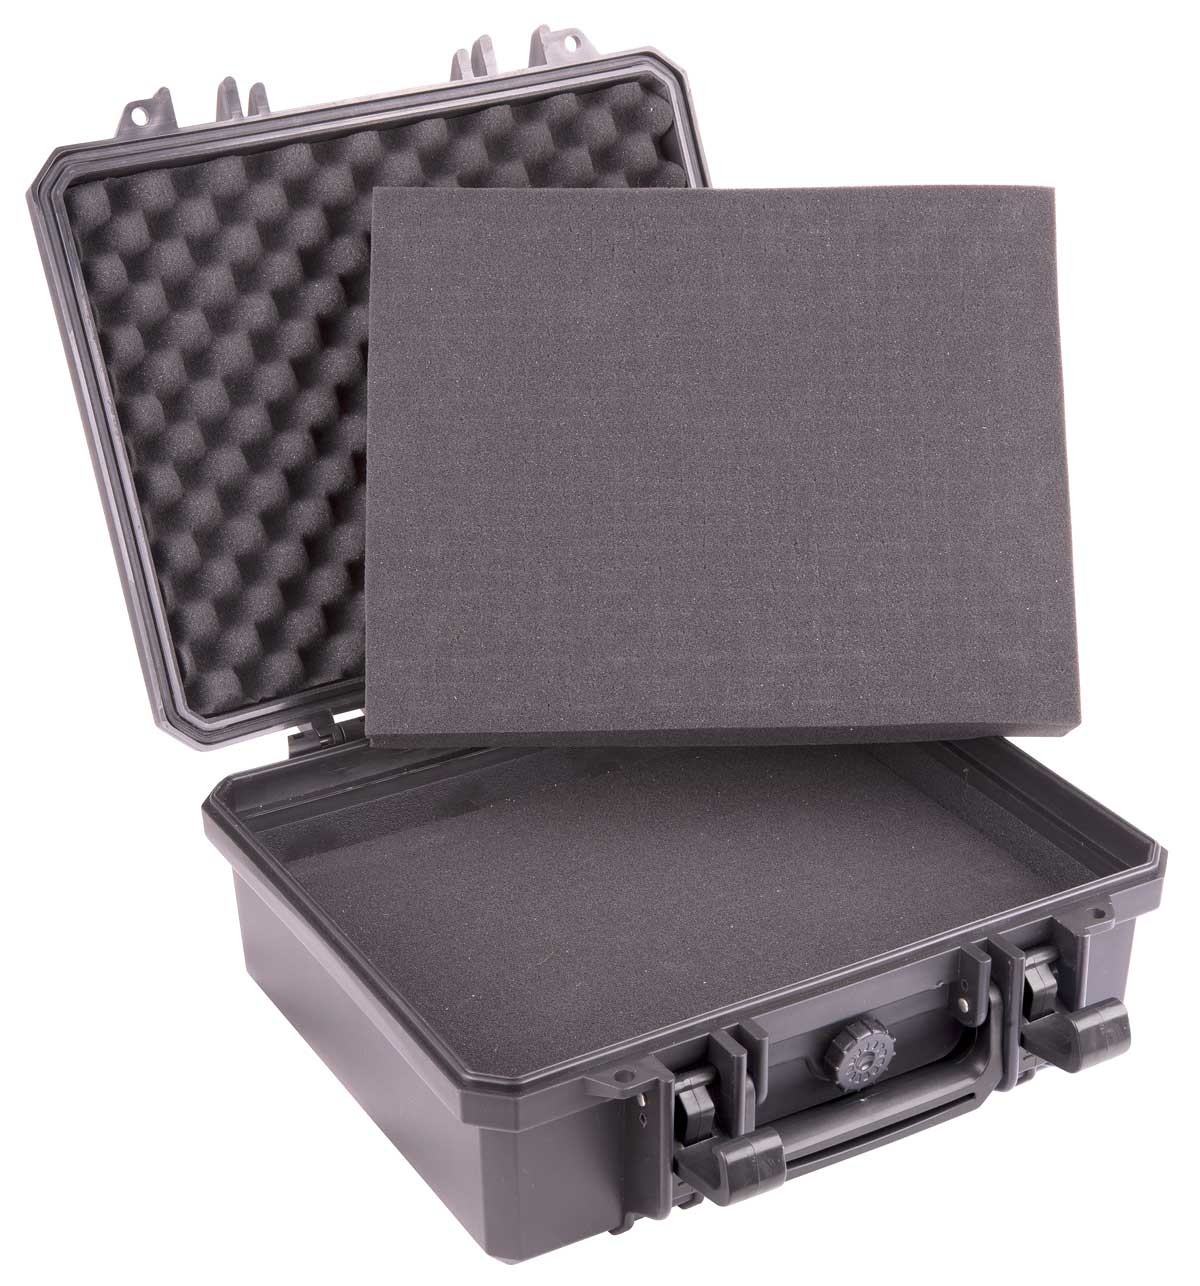 REED R8890 Large Hard Carrying Case-REED R8888 6